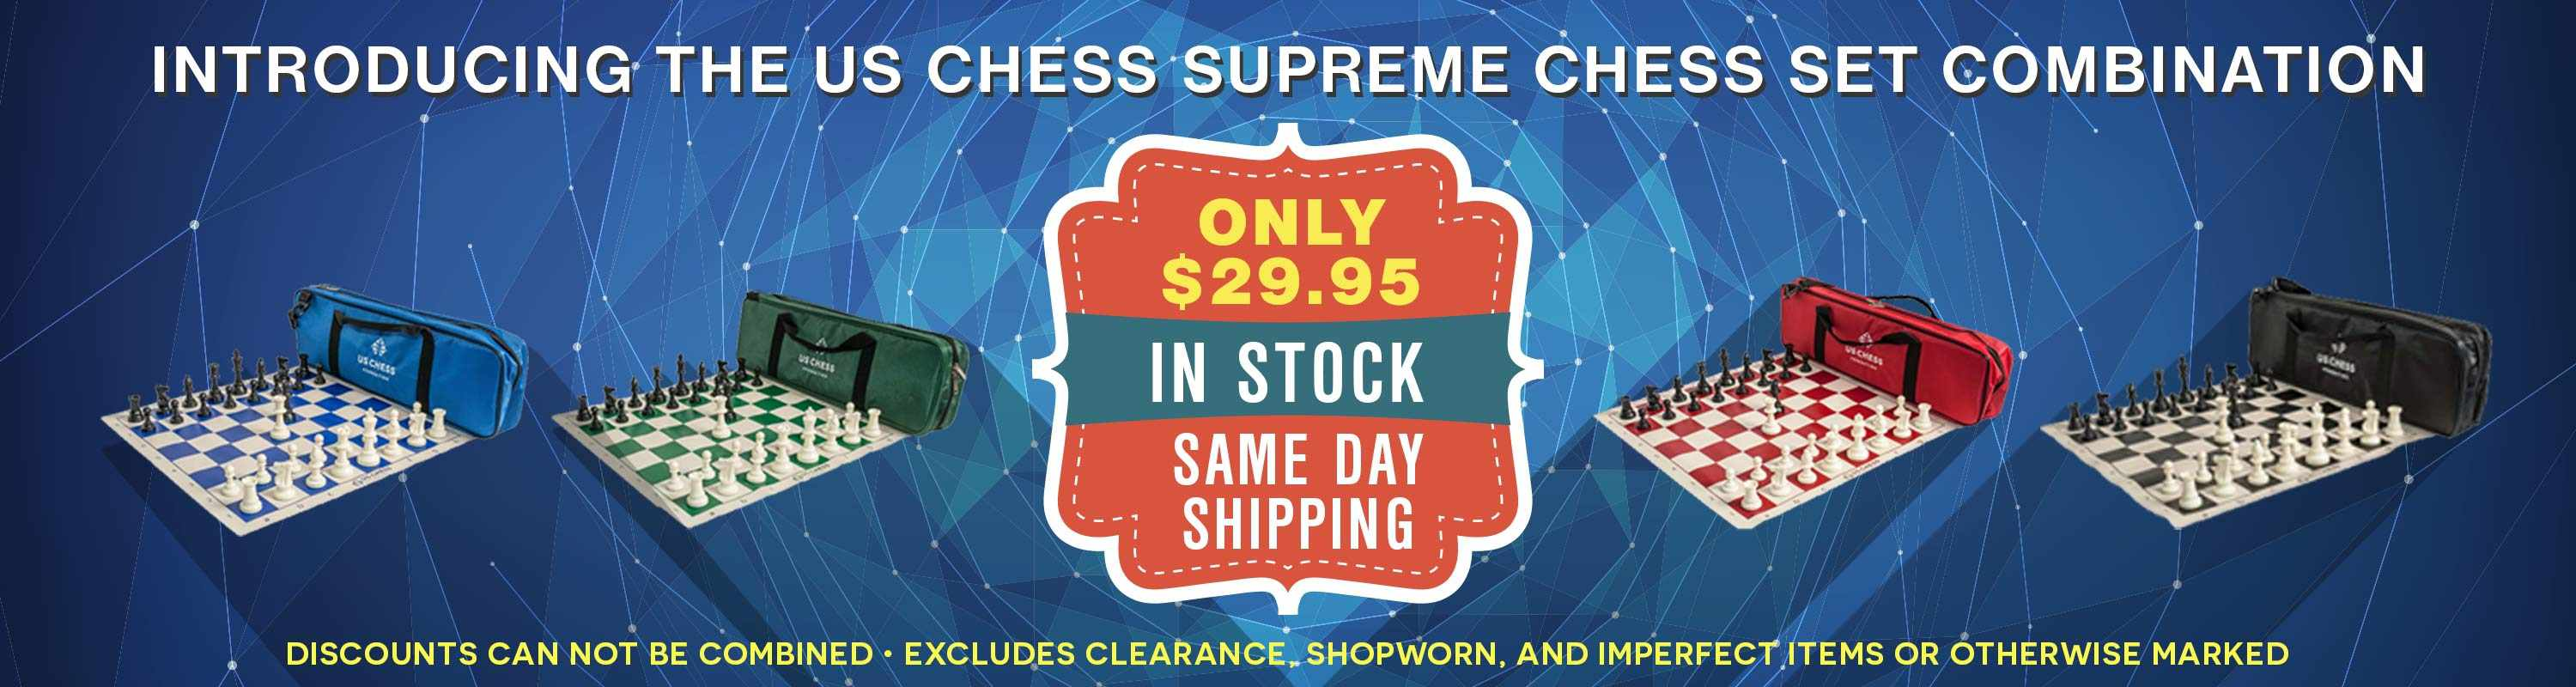 Introducing the US Chess Supreme Chess Set Combination! Only $29.95!